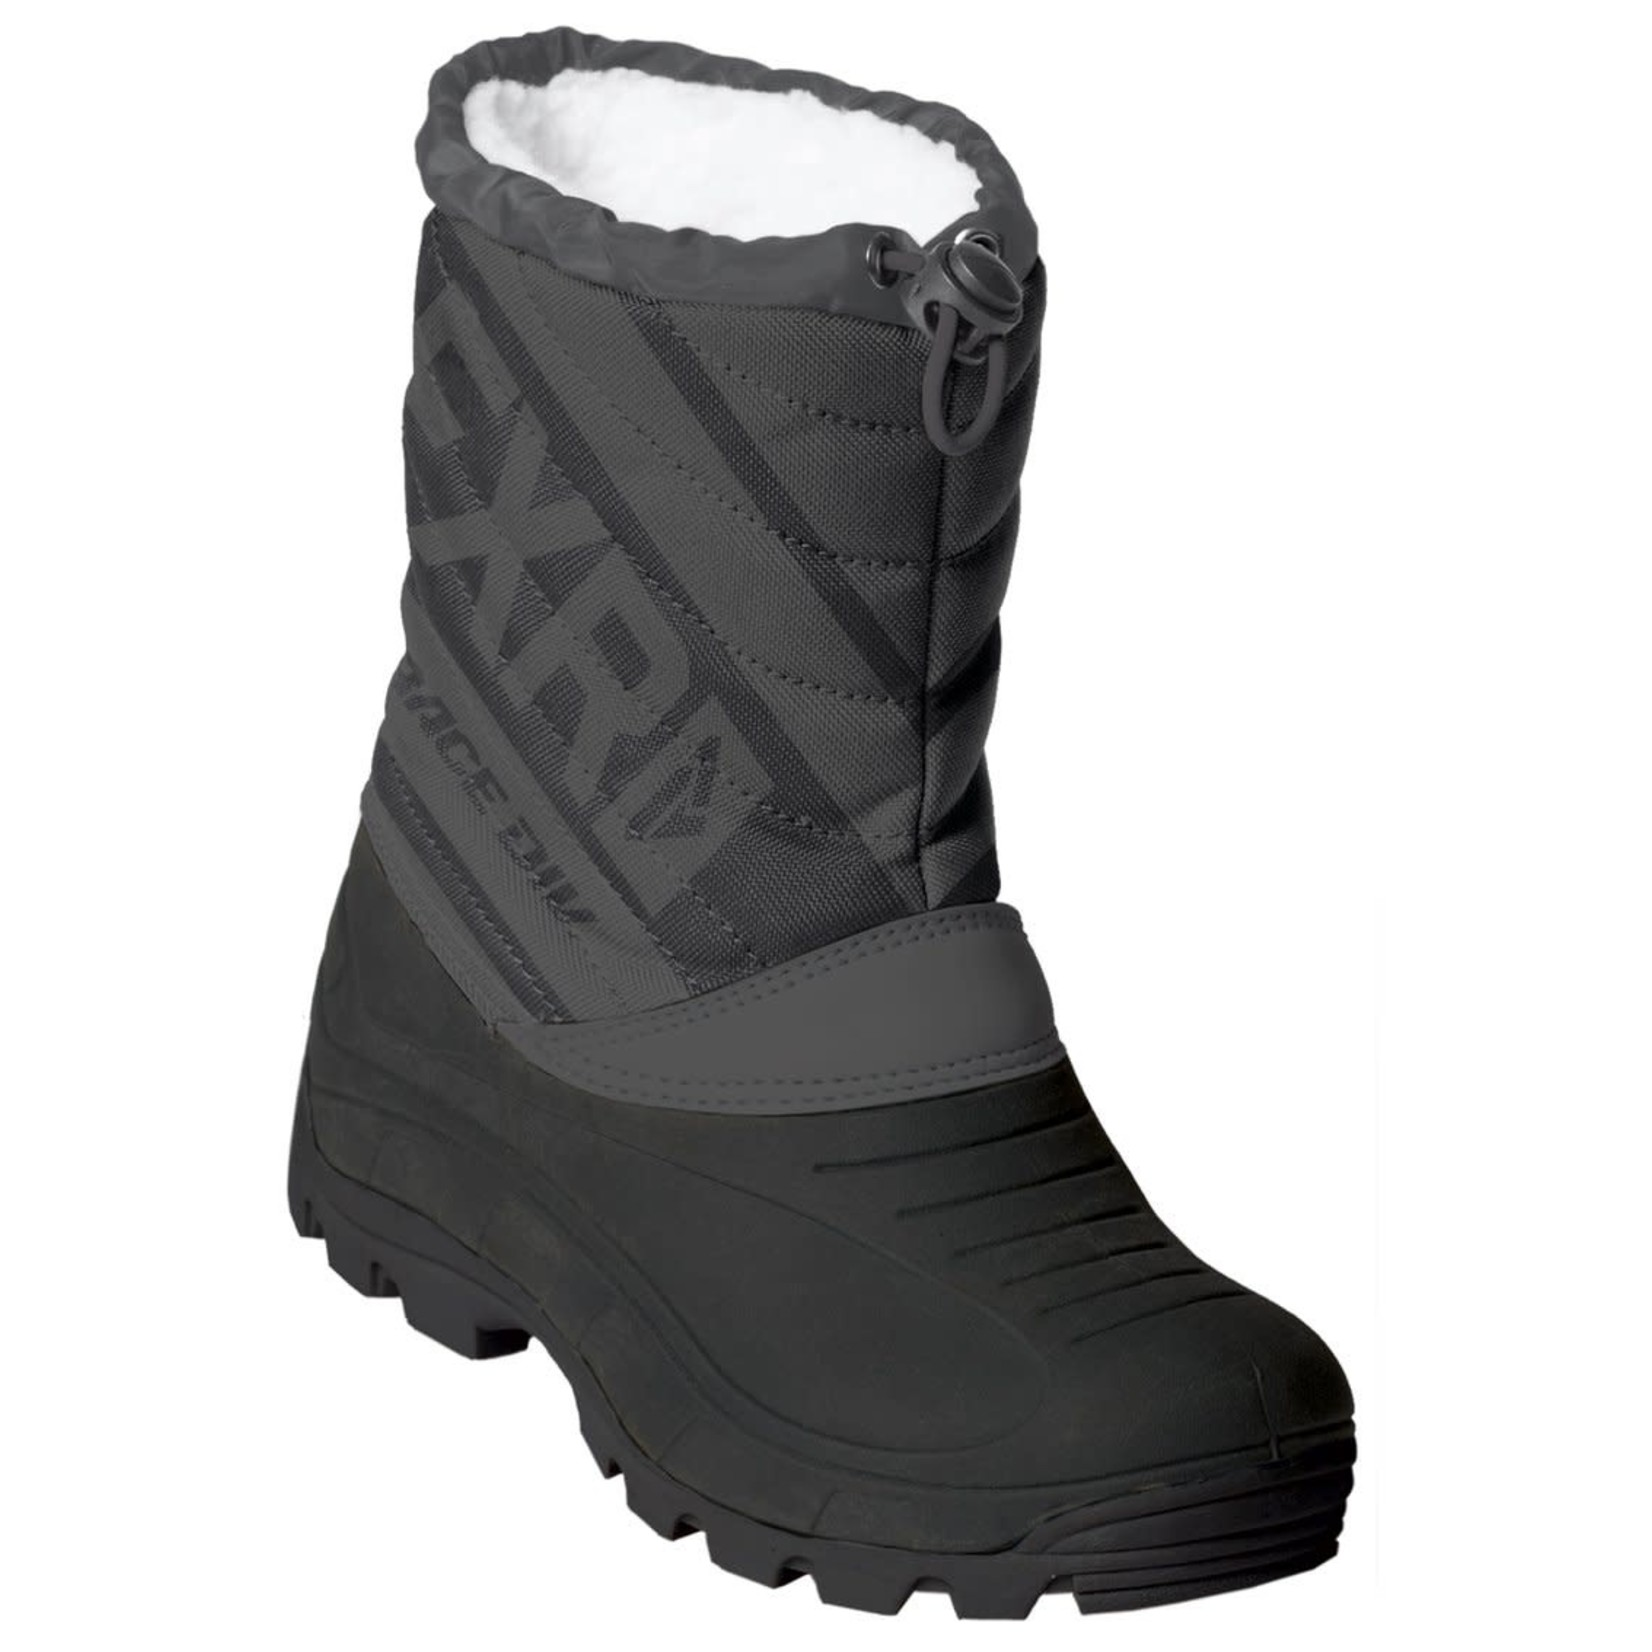 FXR FXR Boots, Octane, Youth